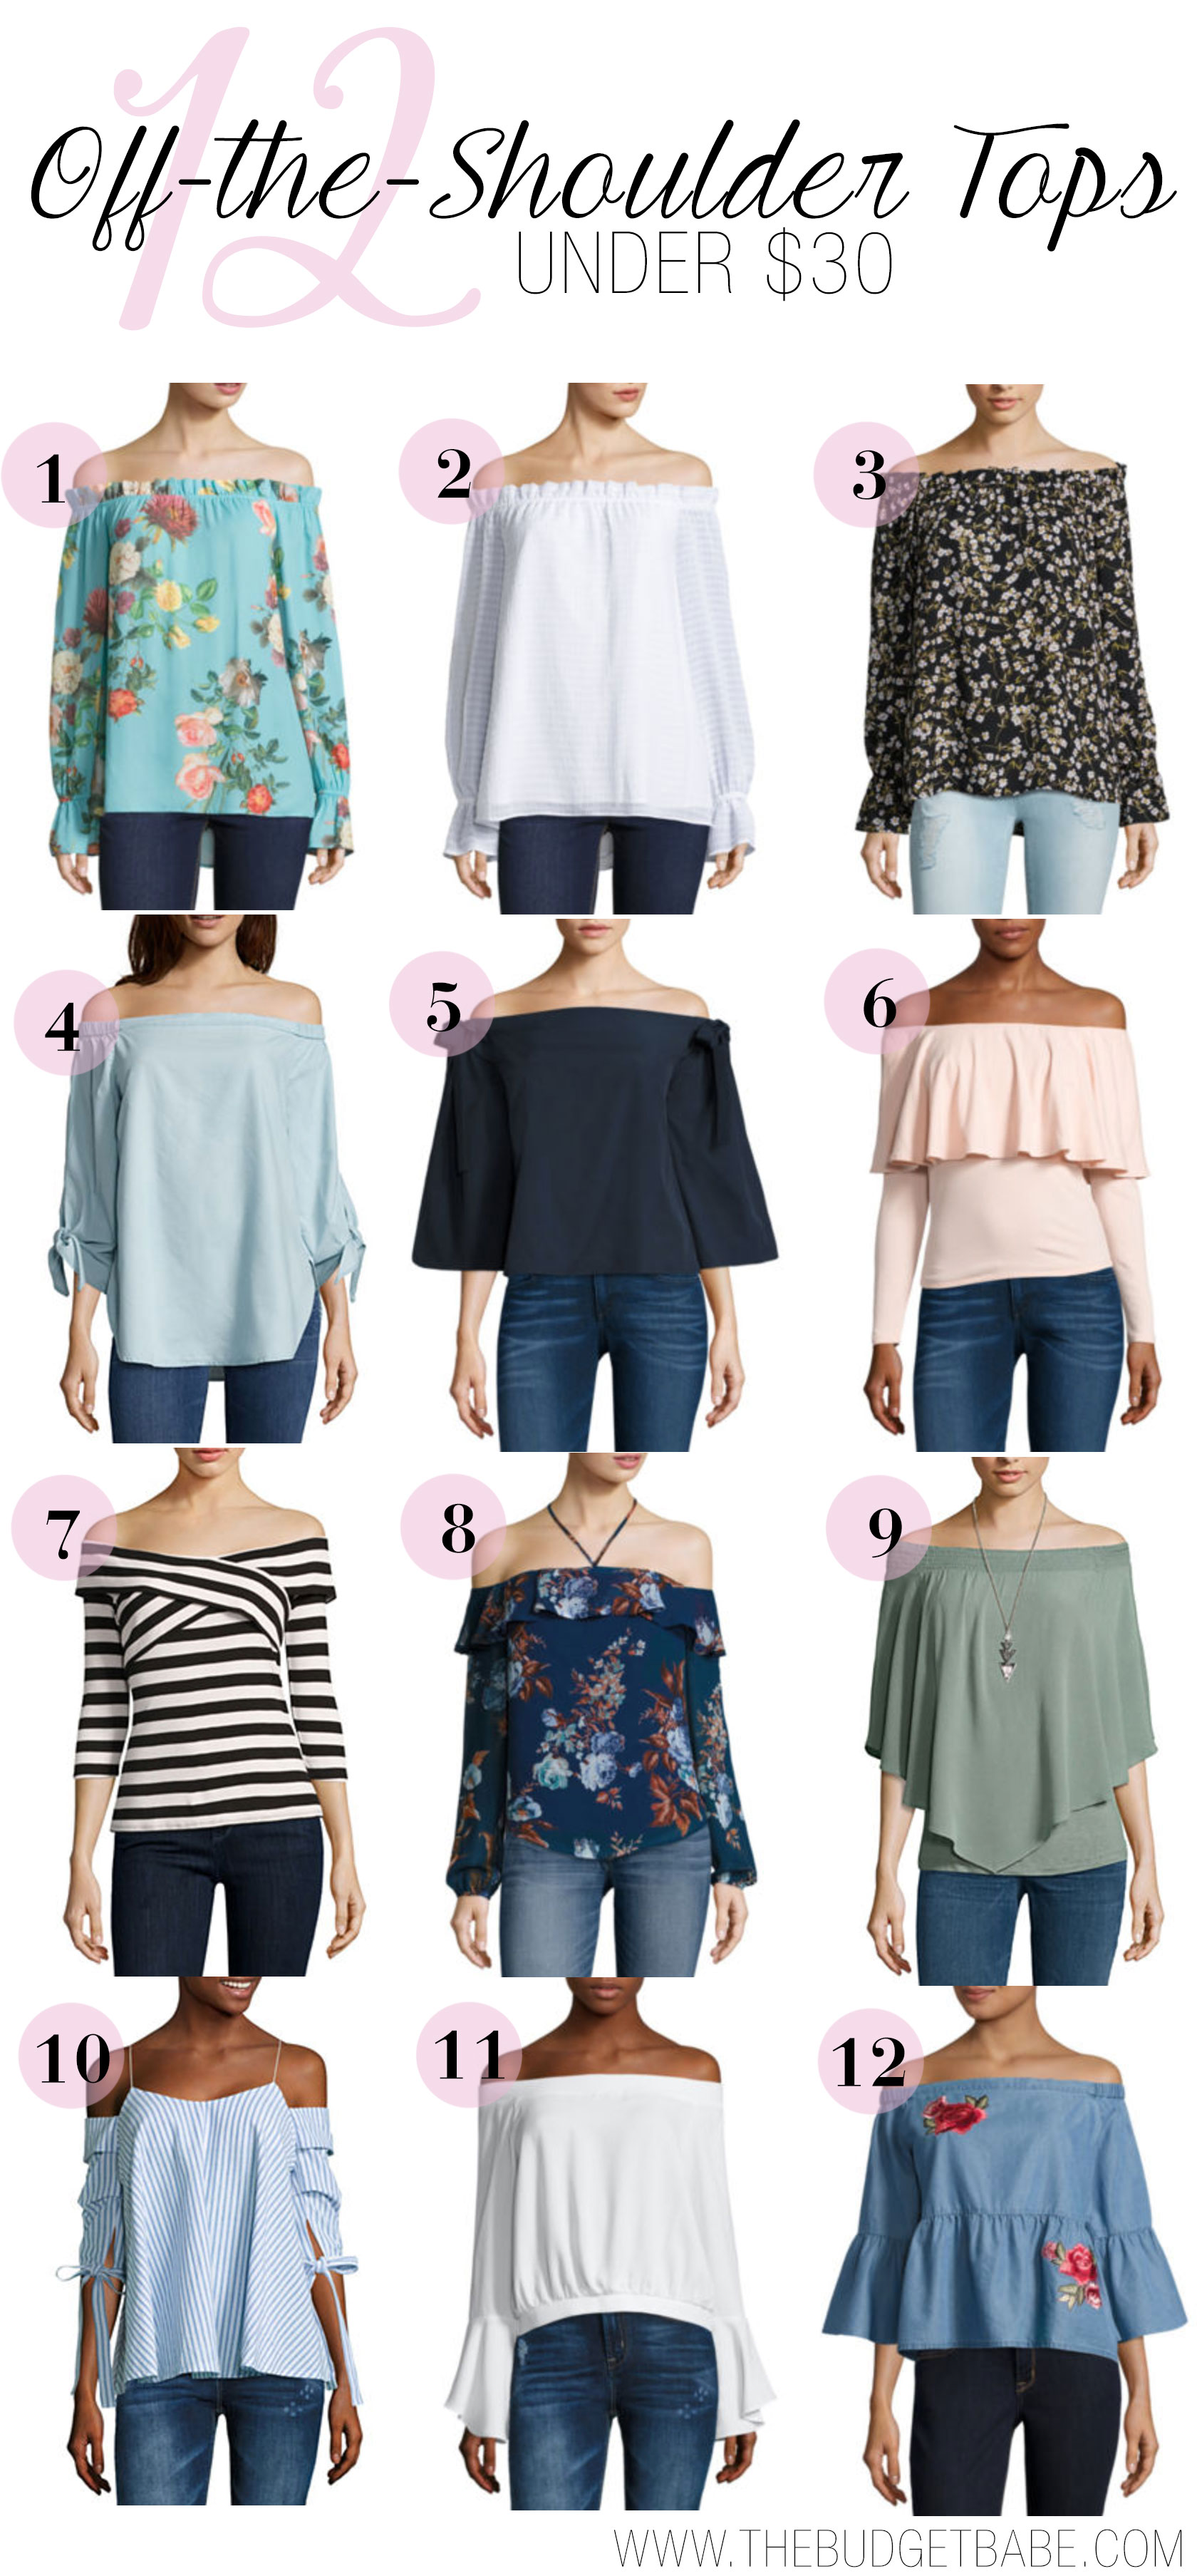 Shop the best off-the-shoulder tops under $30!